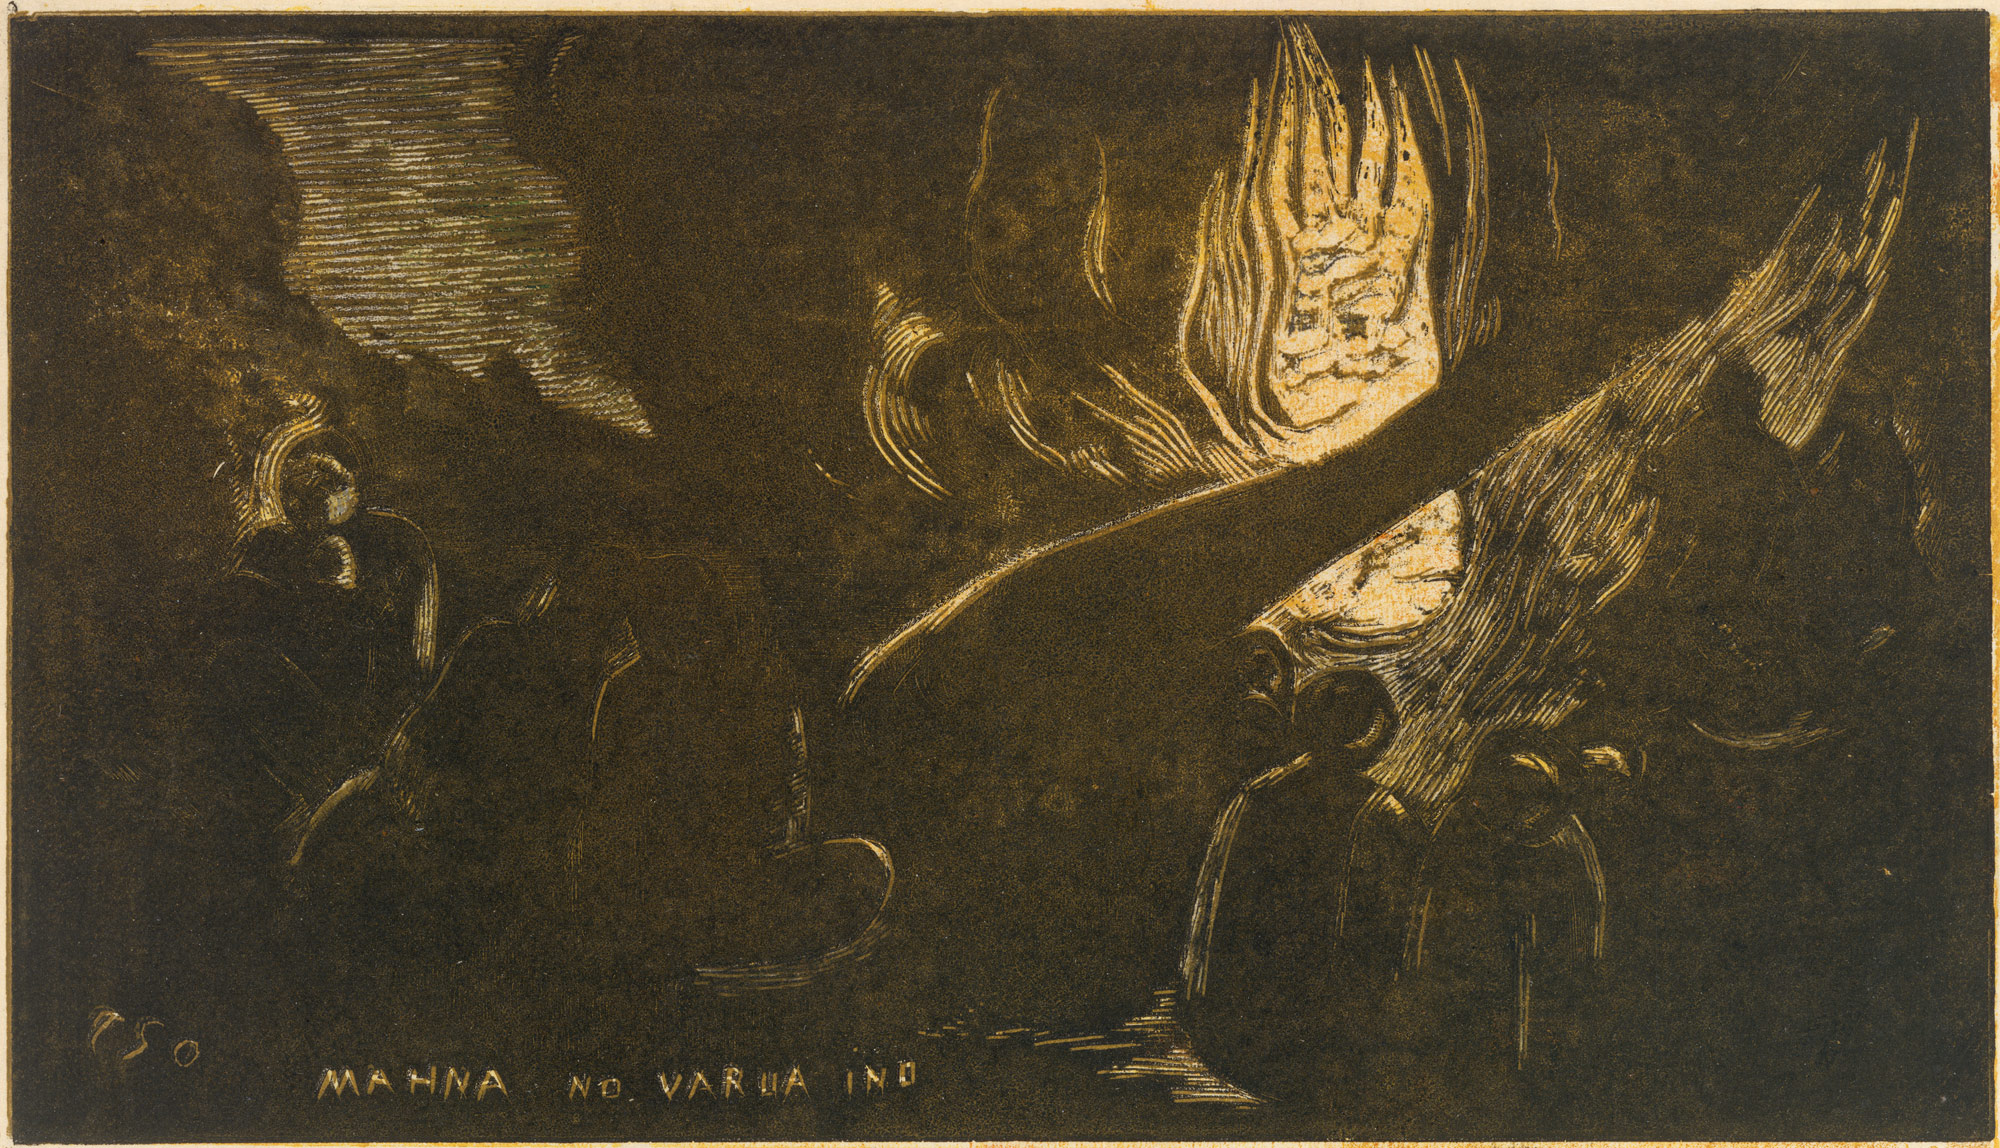 The Devil Speaks (Mahna No Varua Ino), from Fragrance (Noa Noa)